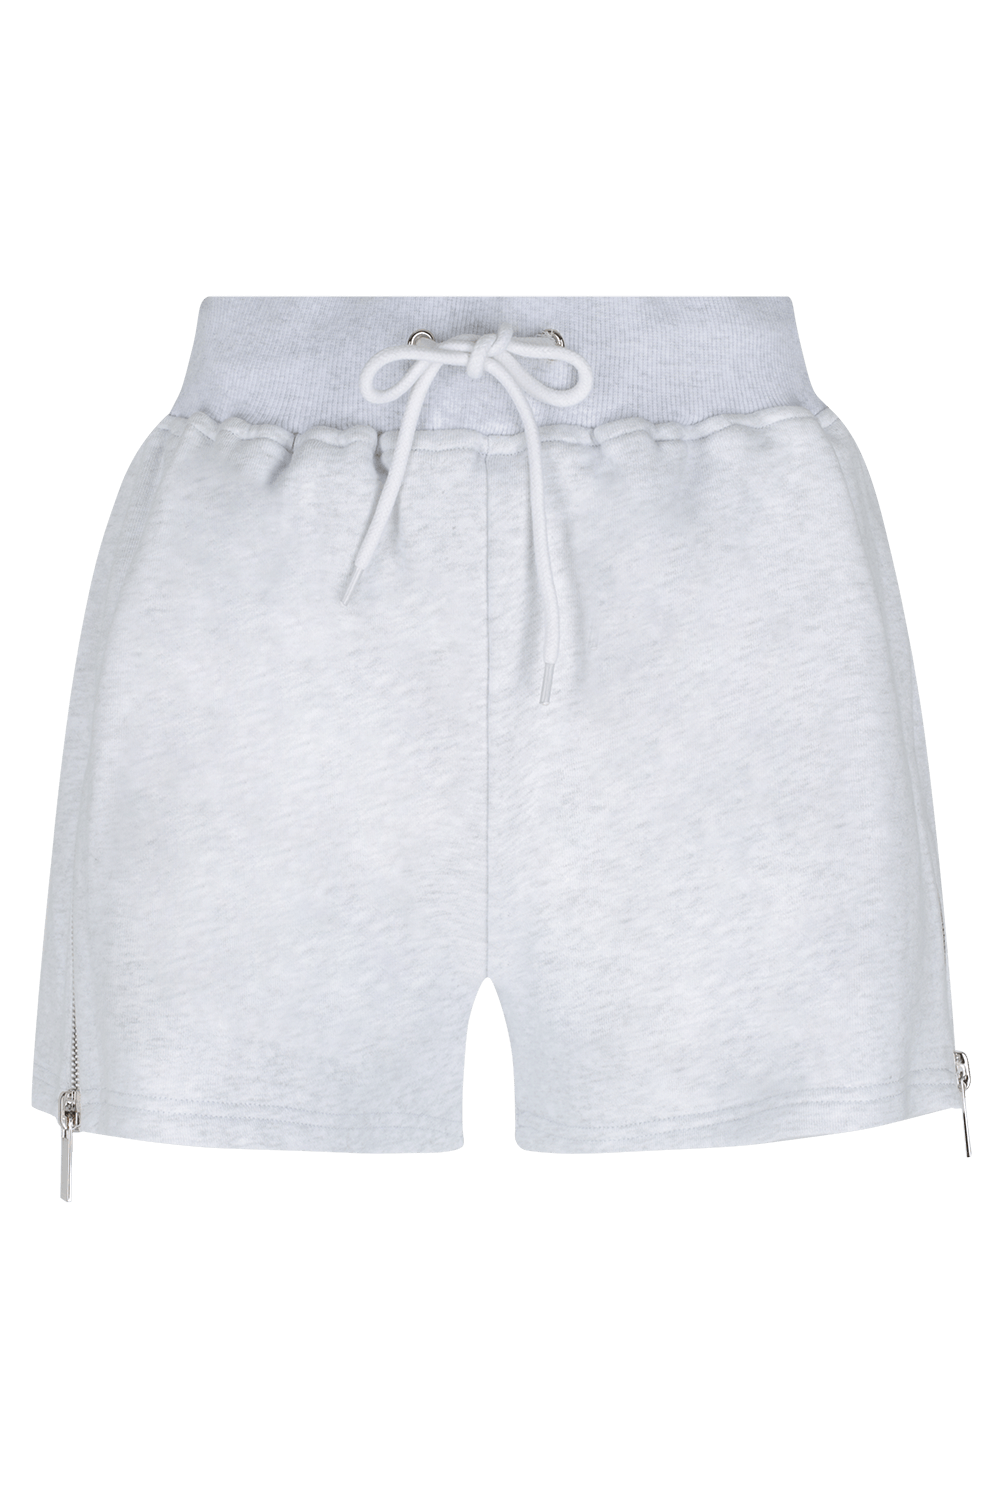 HATE ME Shorts - GRY/PLTNM | HAUS OF SONG